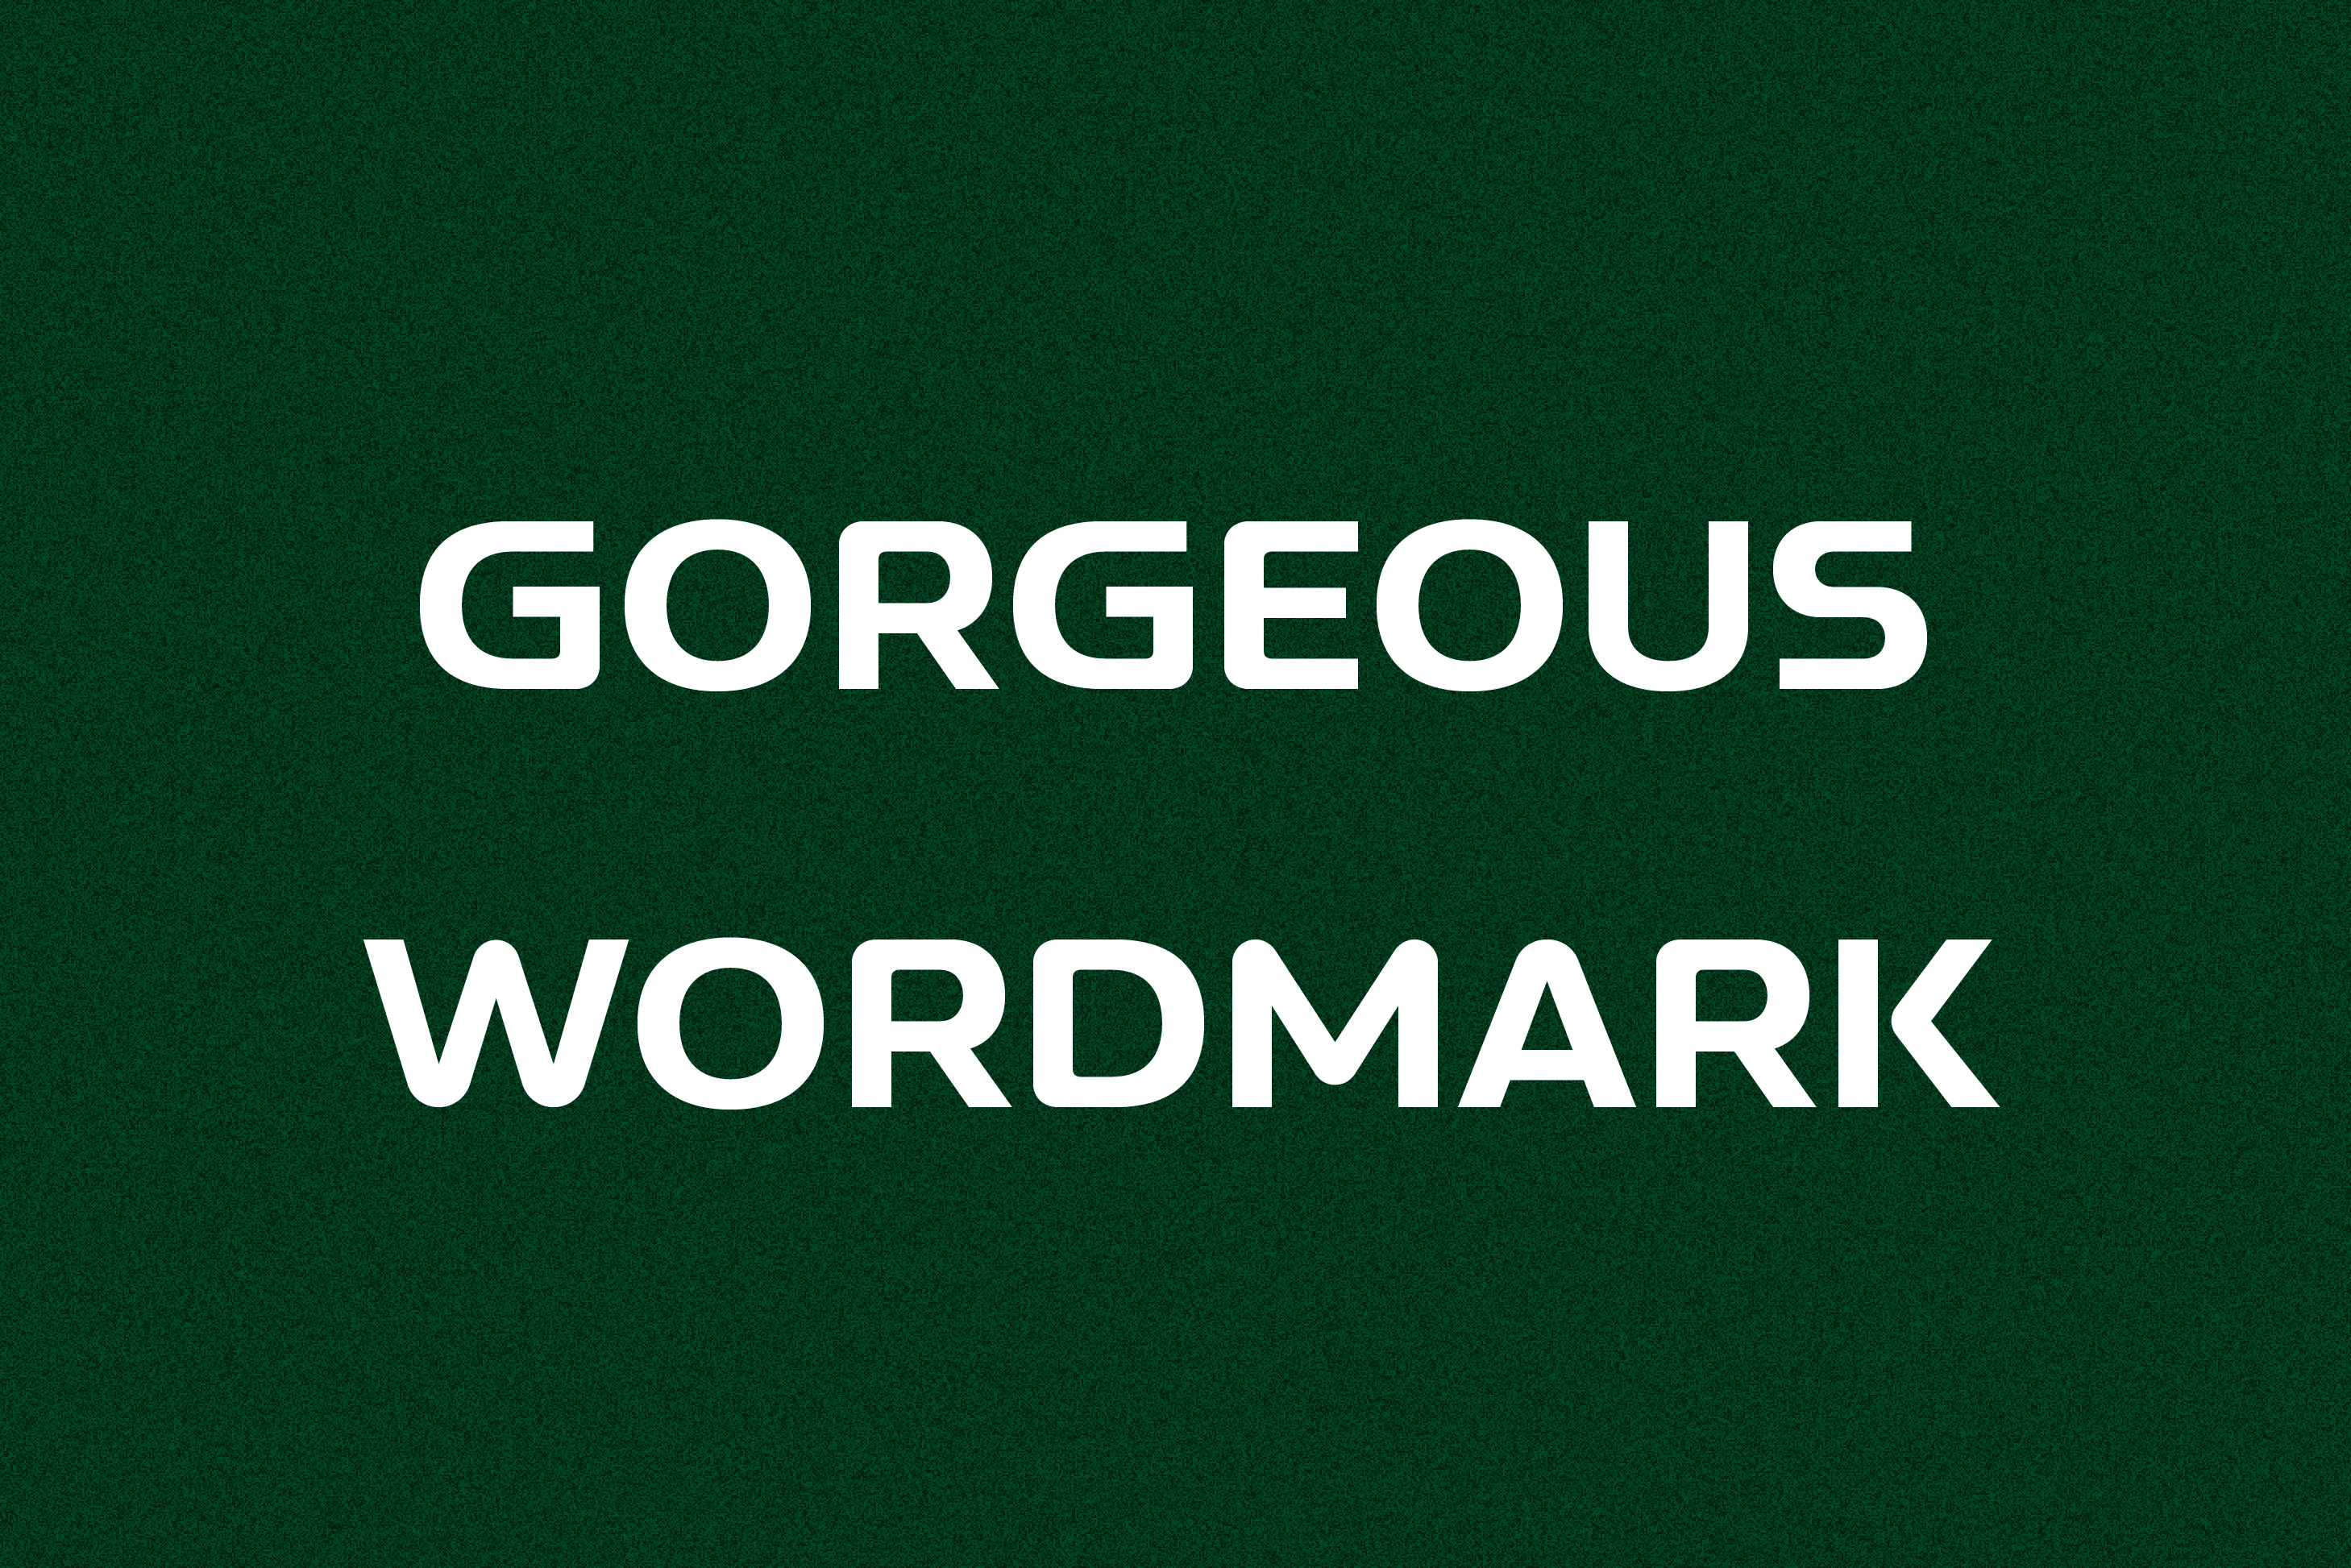 Marky - Wordmark Font example image 2